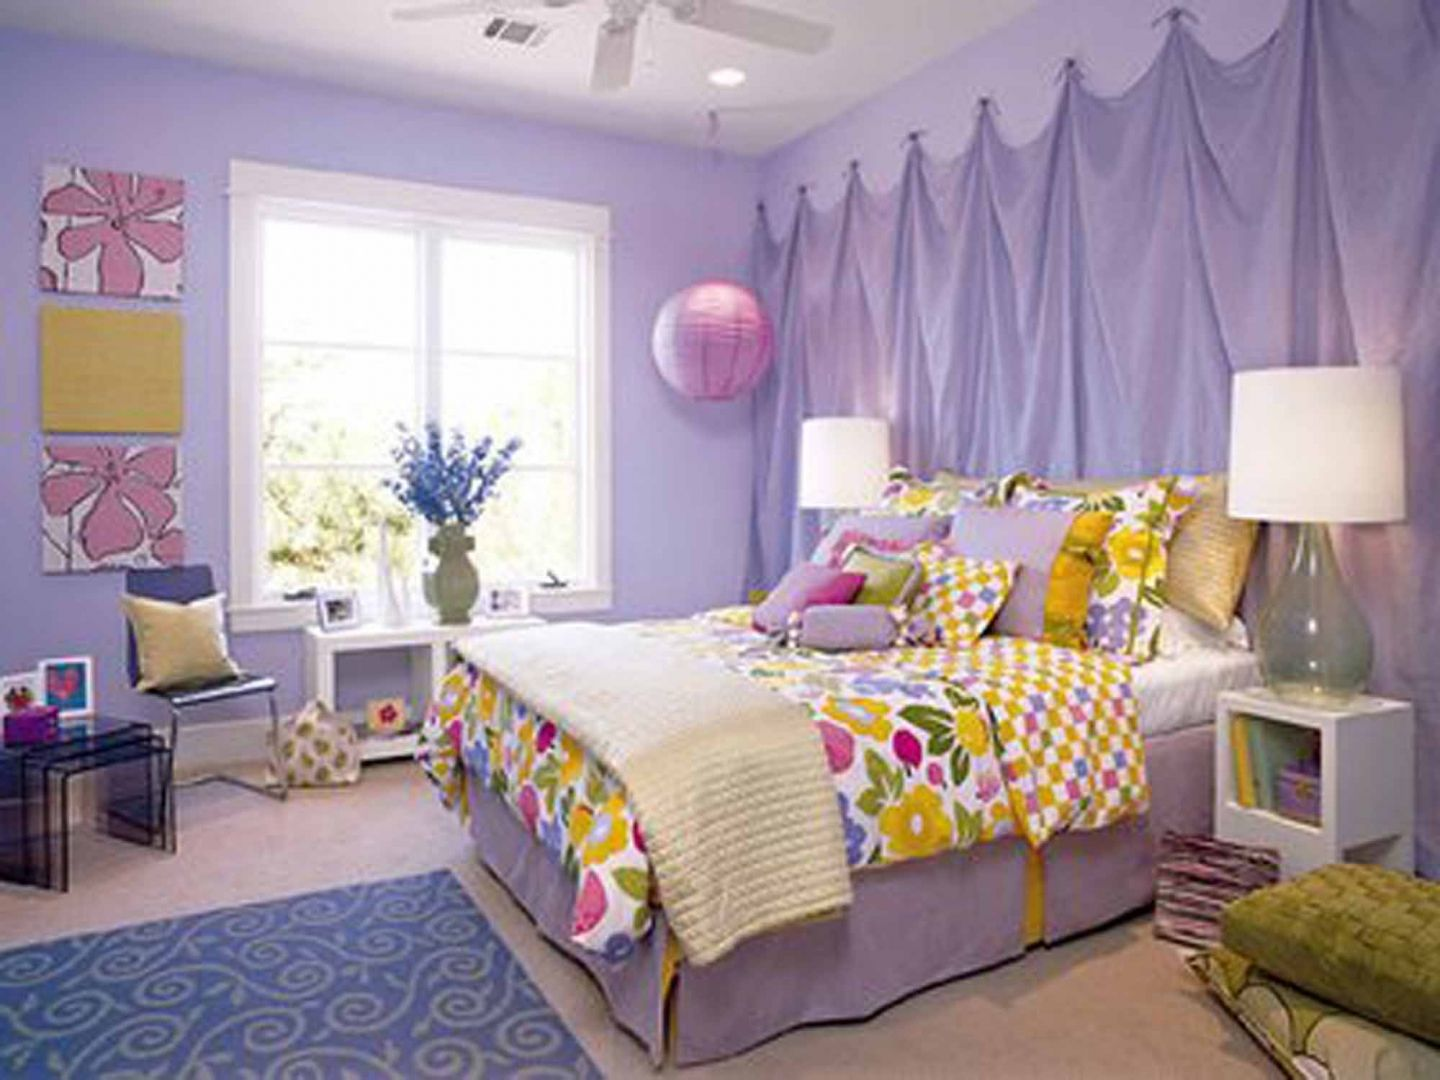 Lilac Bedroom Walls | ... Lavender Wall Paint Color and Colorful Bed Cover and White Table Lamp